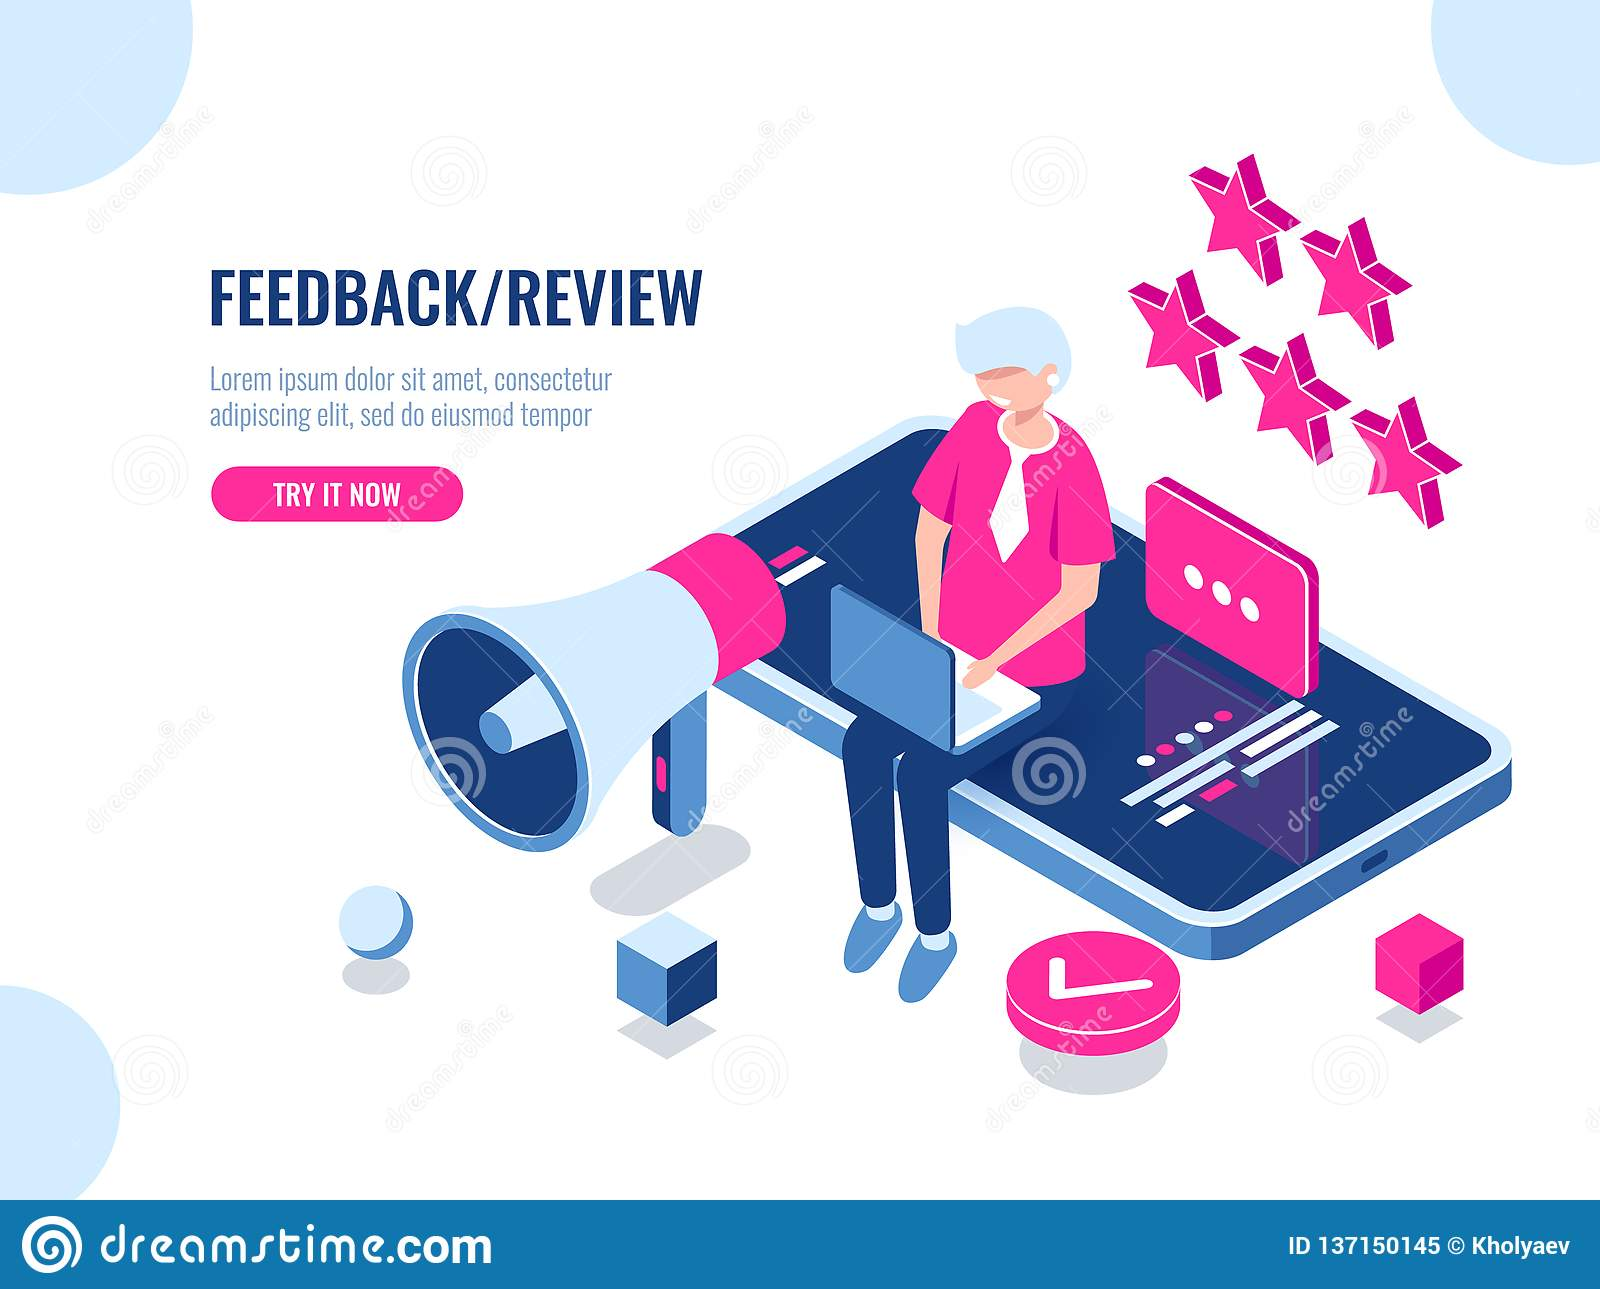 A person leaves a review of the company using a mobile application on a smartphone, concept feedback, five stars, good